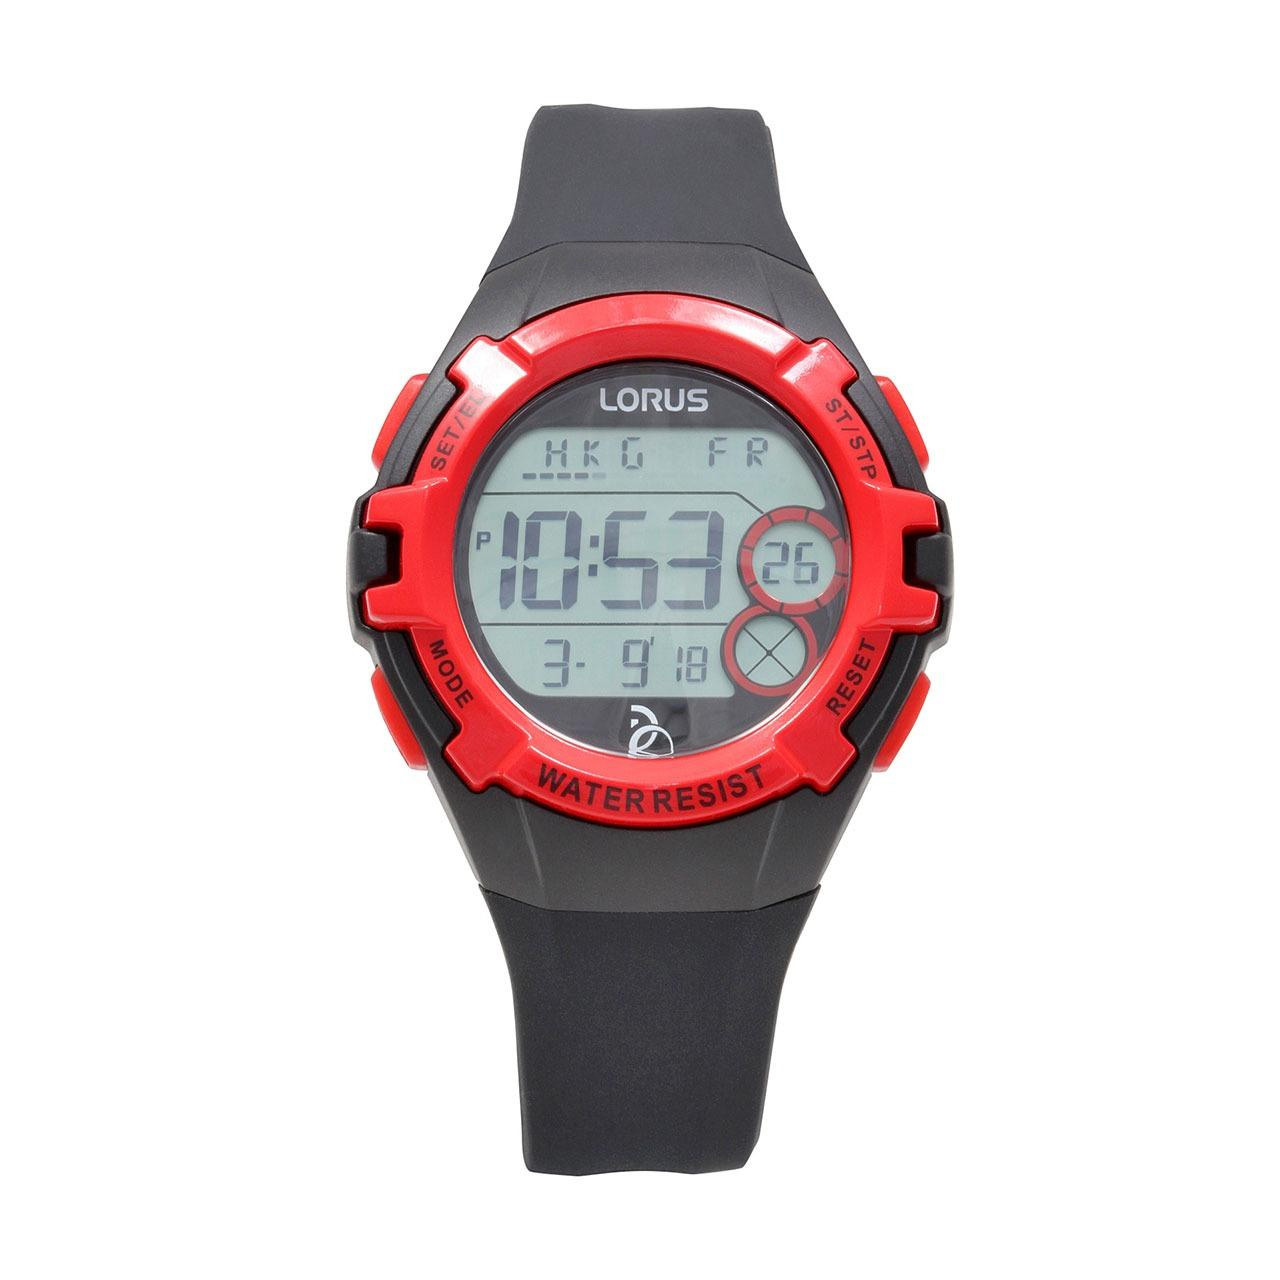 LORUS Jam Tangan - Black Red - Silicon - R2389LX9